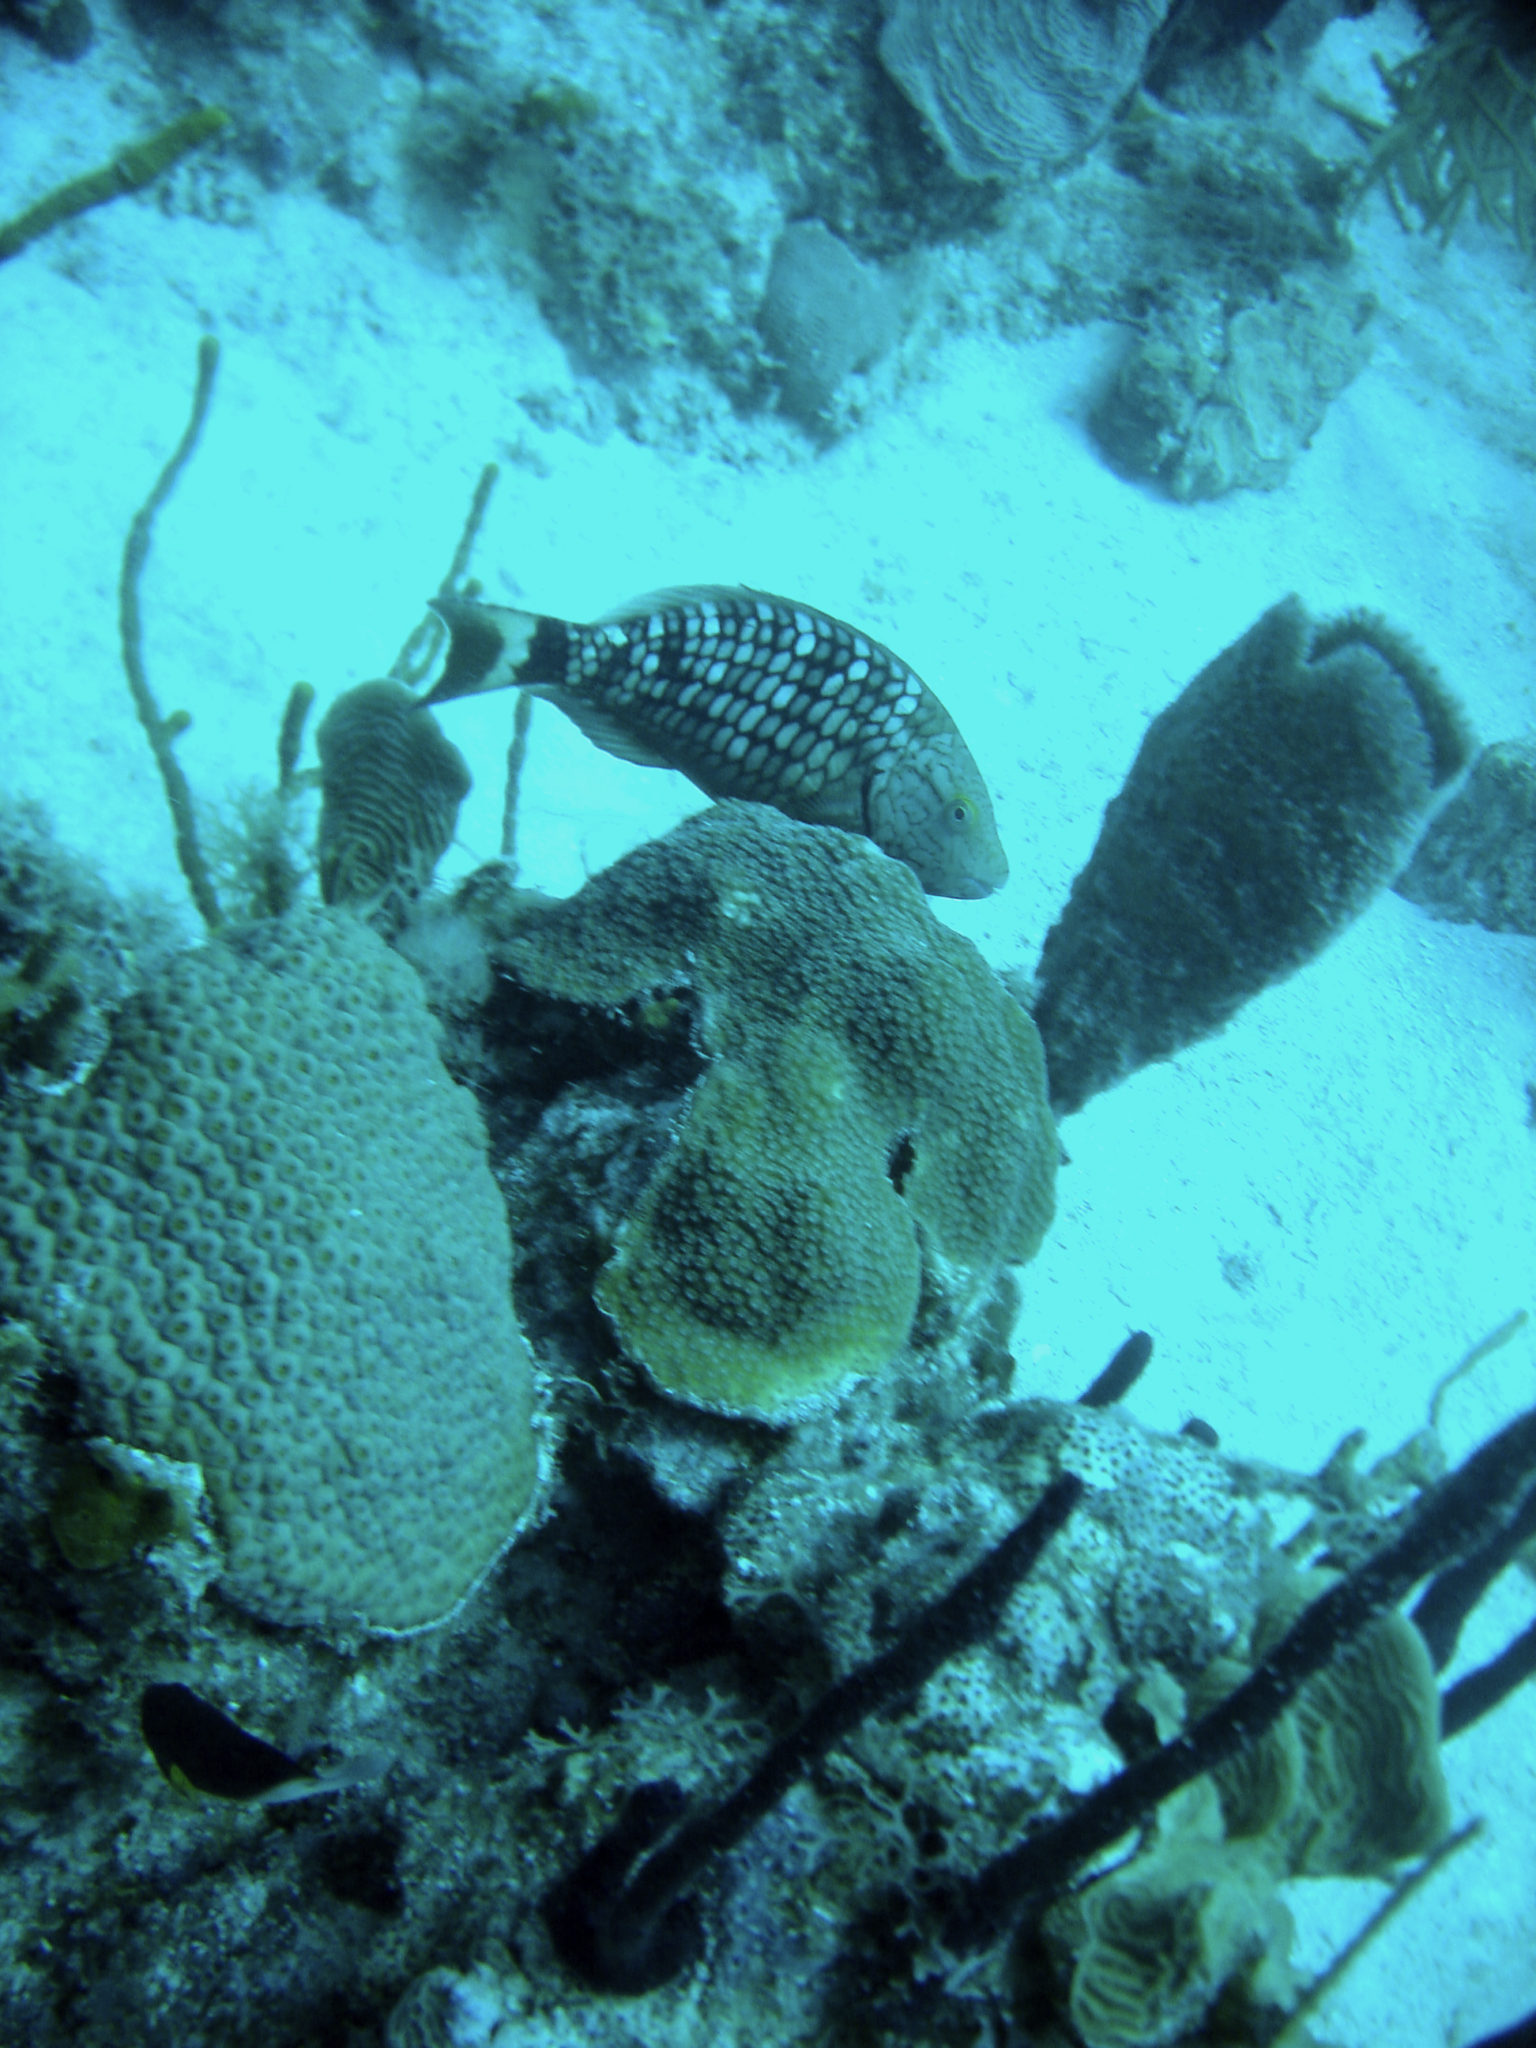 Republique_dominicaine_roadtrip_bayahibe_plongee_scubafun_coraux_poisson_dominicus_reef